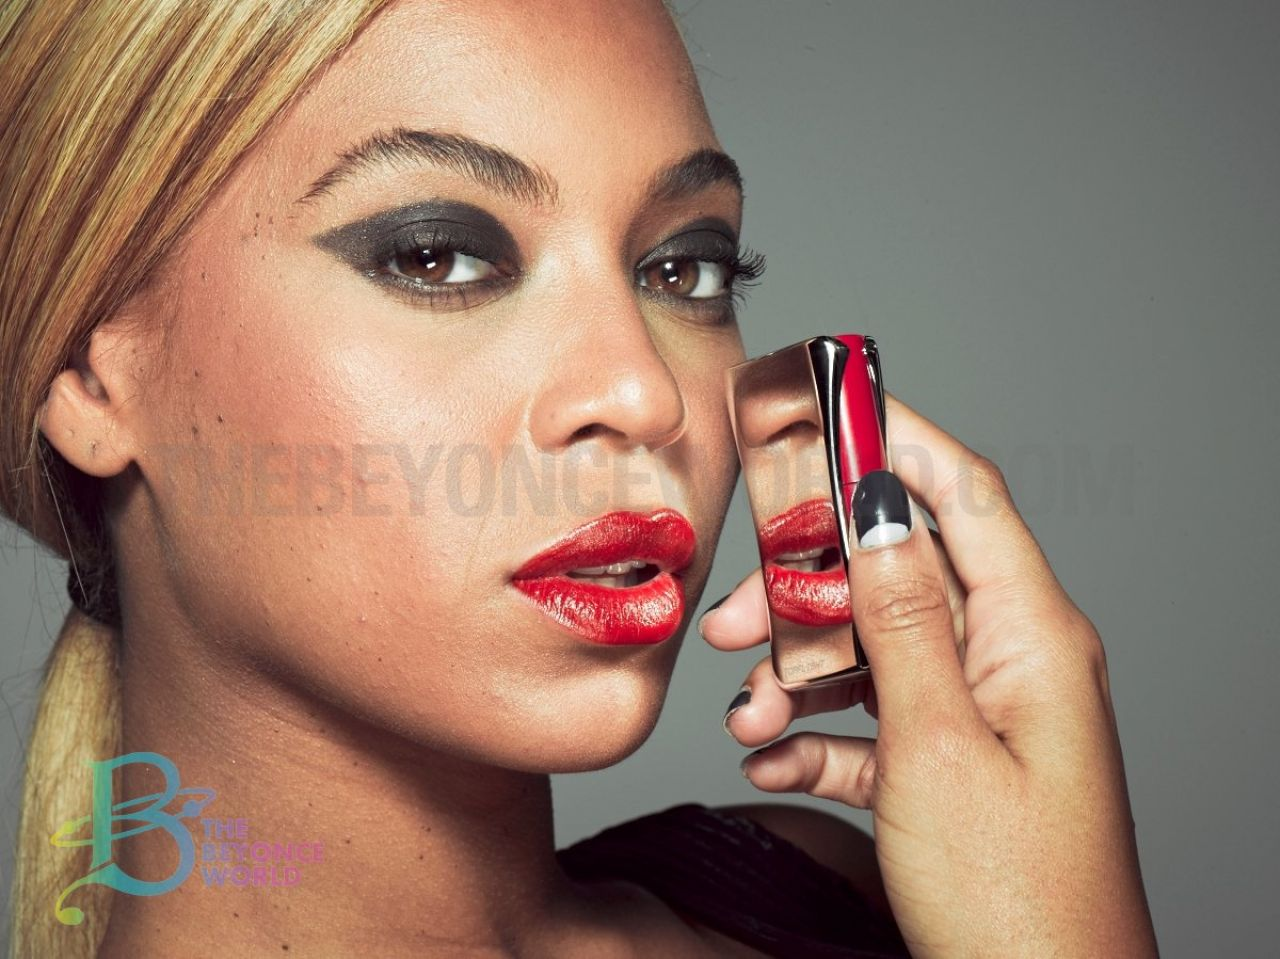 Beyonce unretouched leaked pics of beyonc s 2013 l oreal ad campaign - Photo de maquillage ...